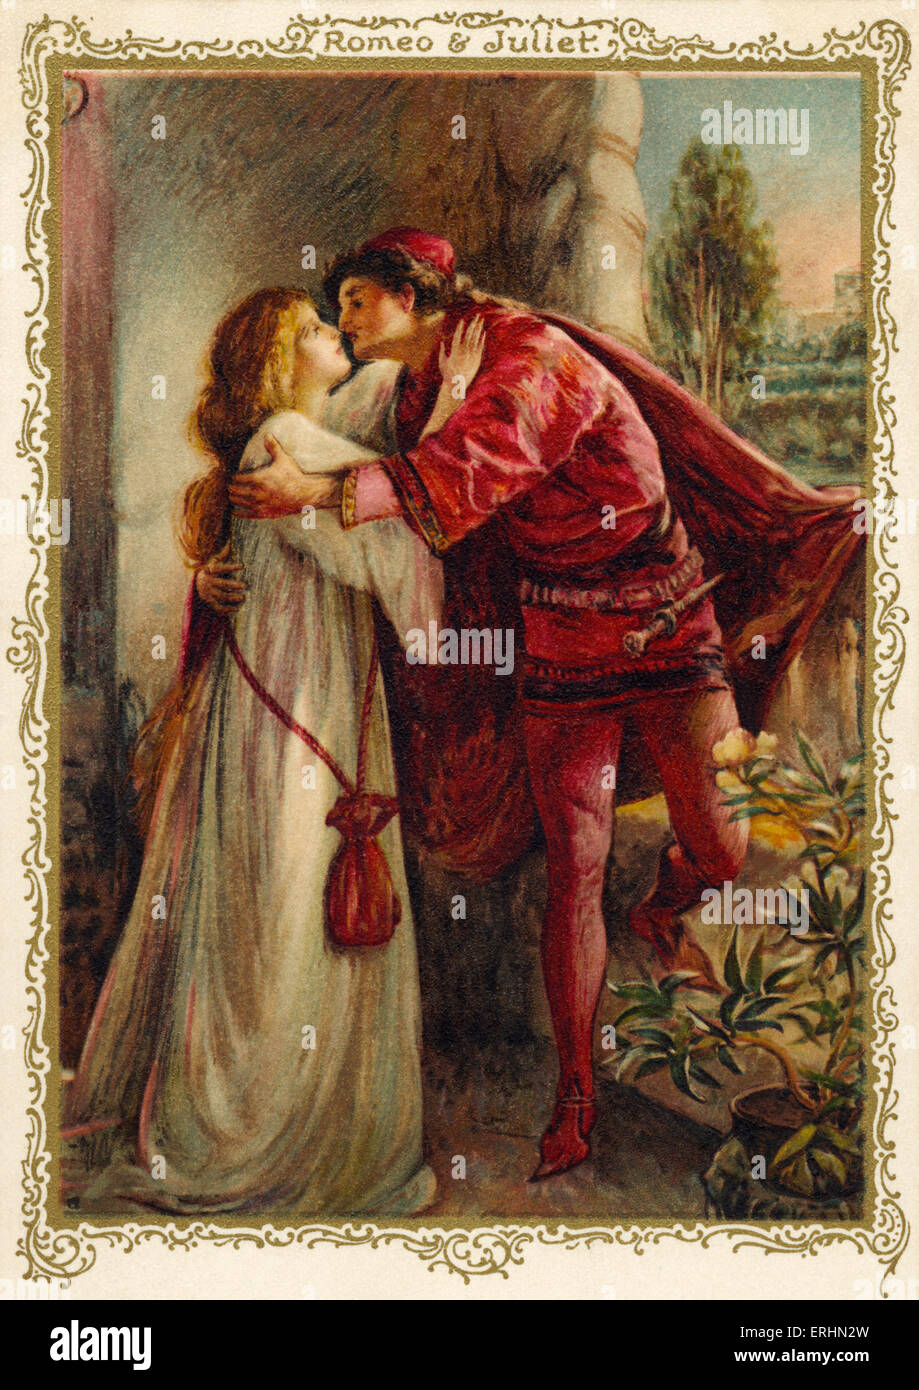 the act three scene one of romeo and juliet a play by william shakespeare For example if you are using text from act 3, scene 1 and have established that you are writing about romeo & juliet, this information can be formatted: (3122-23) use only the verse numbers in parenthetical citations if your paper goes into detail about a specific section of the text.